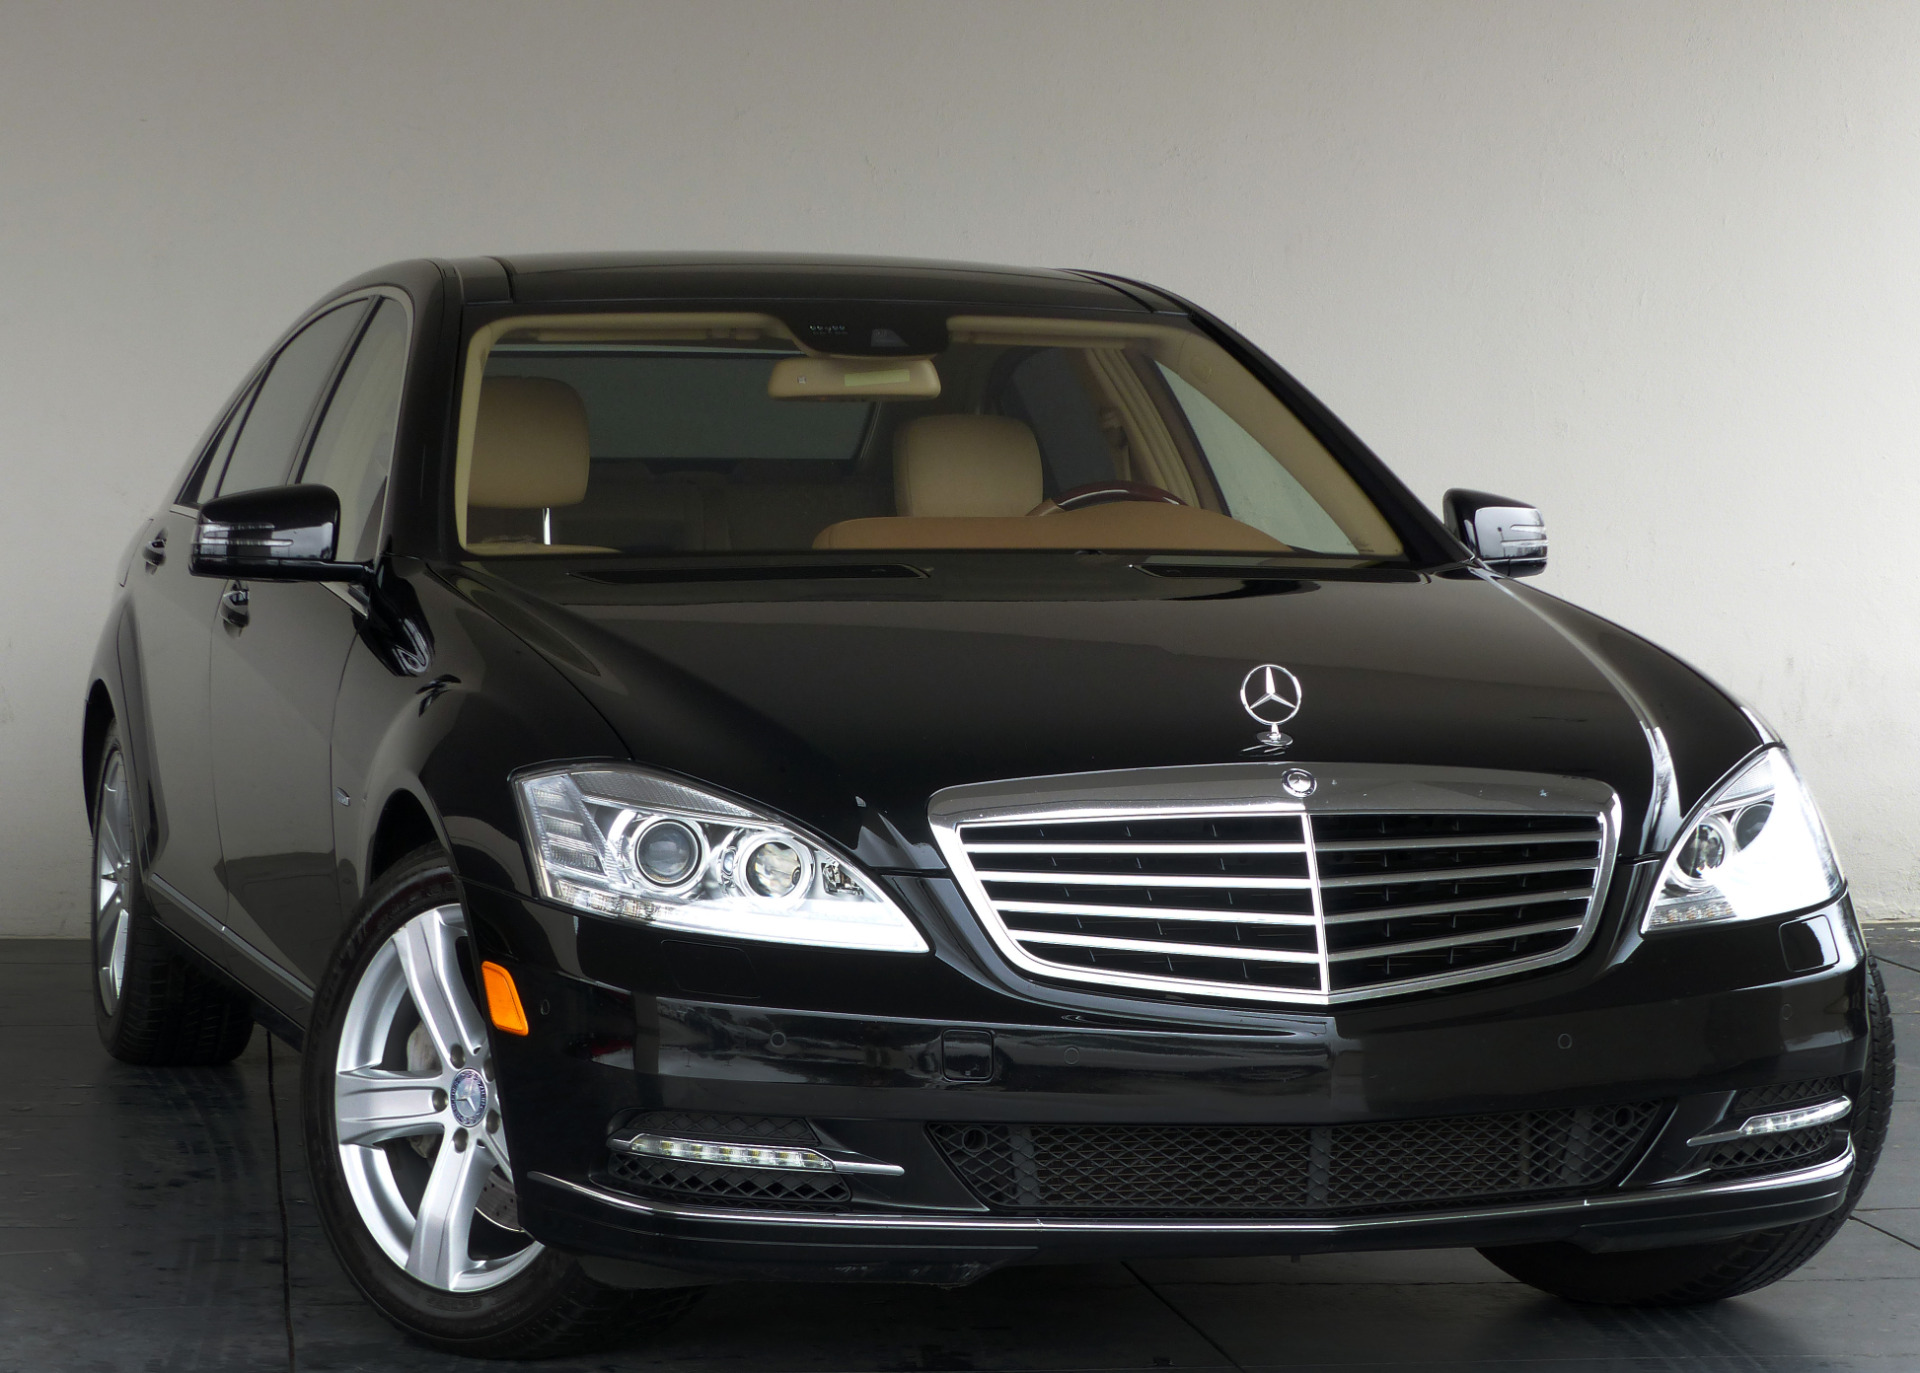 used 2012 mercedes benz s class s 550 marietta ga. Black Bedroom Furniture Sets. Home Design Ideas